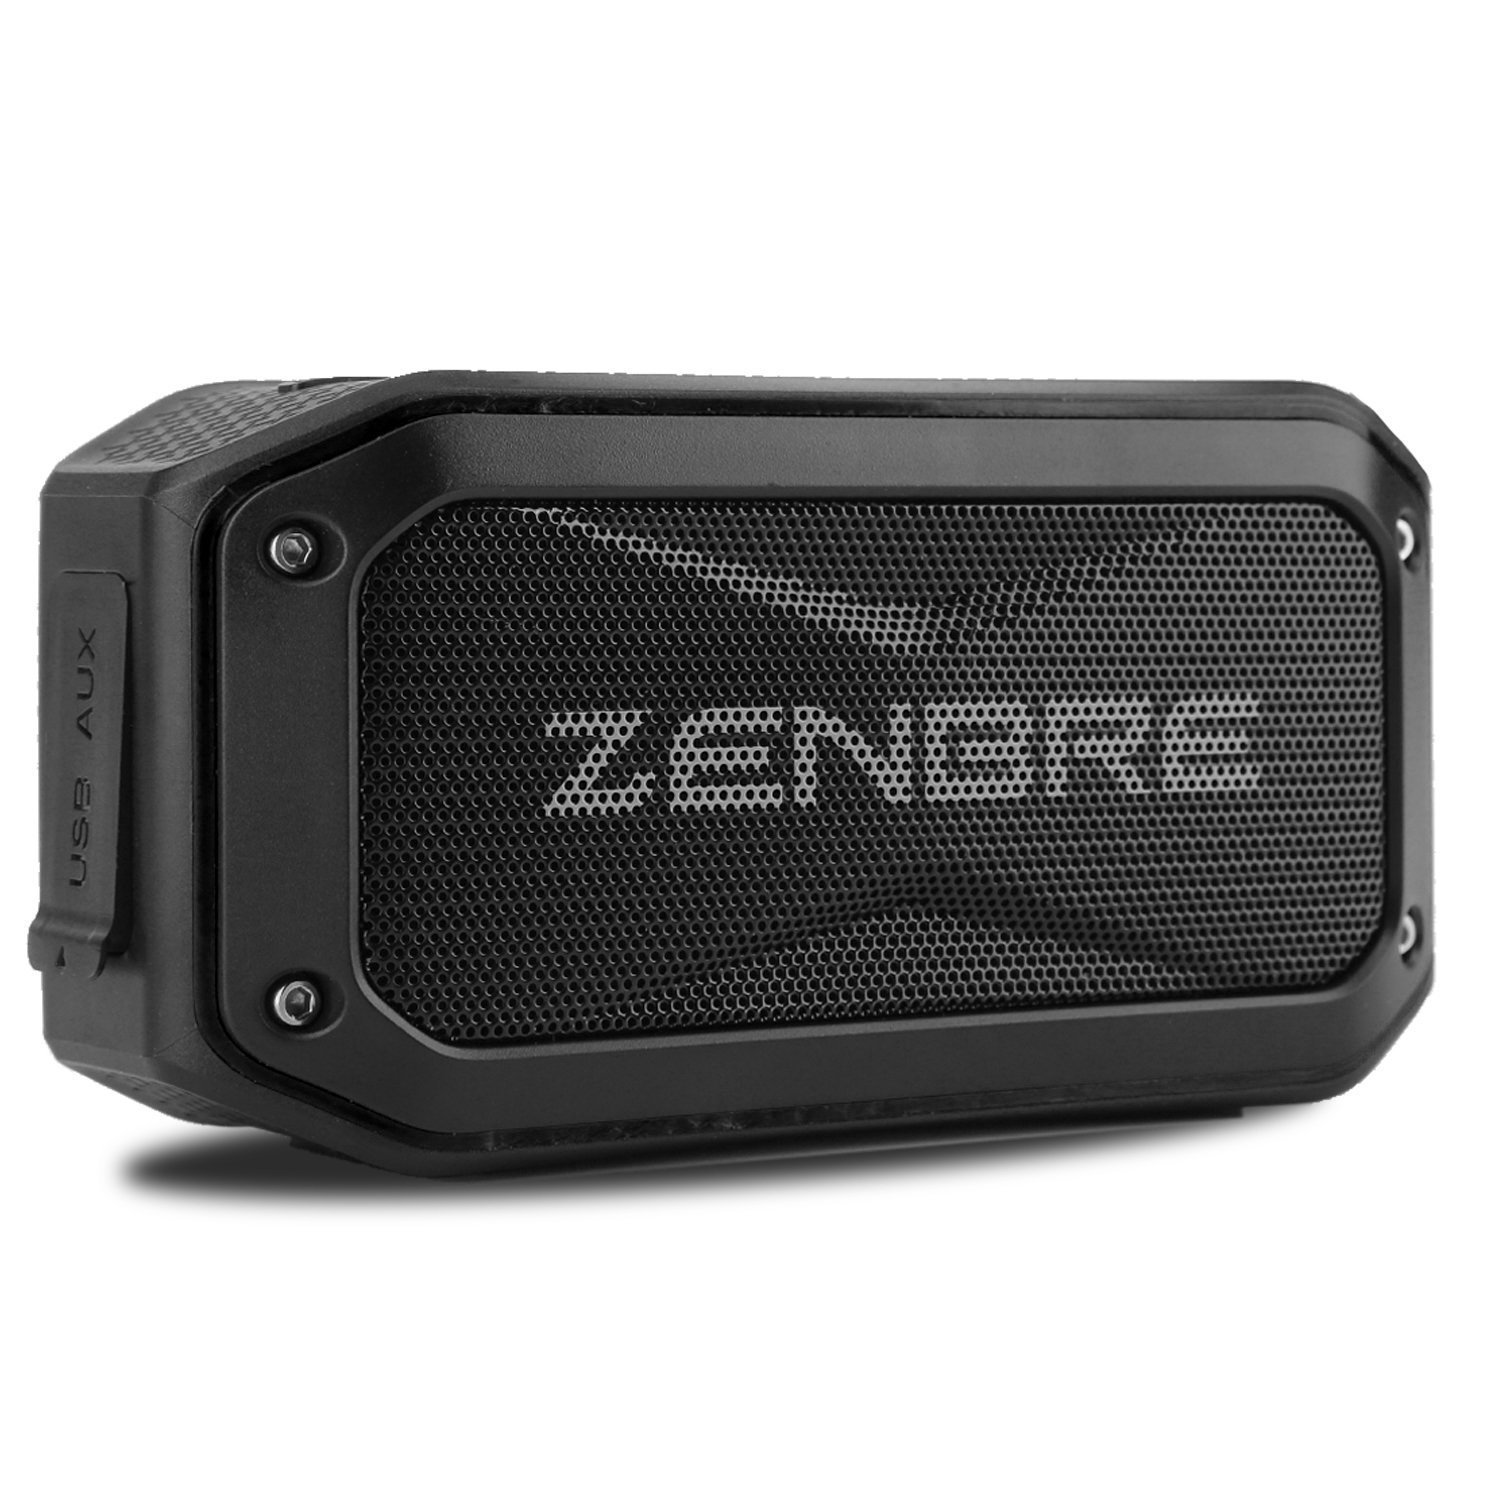 Enceinte Bluetooth, ZENBRE D6 Bluetooth 4